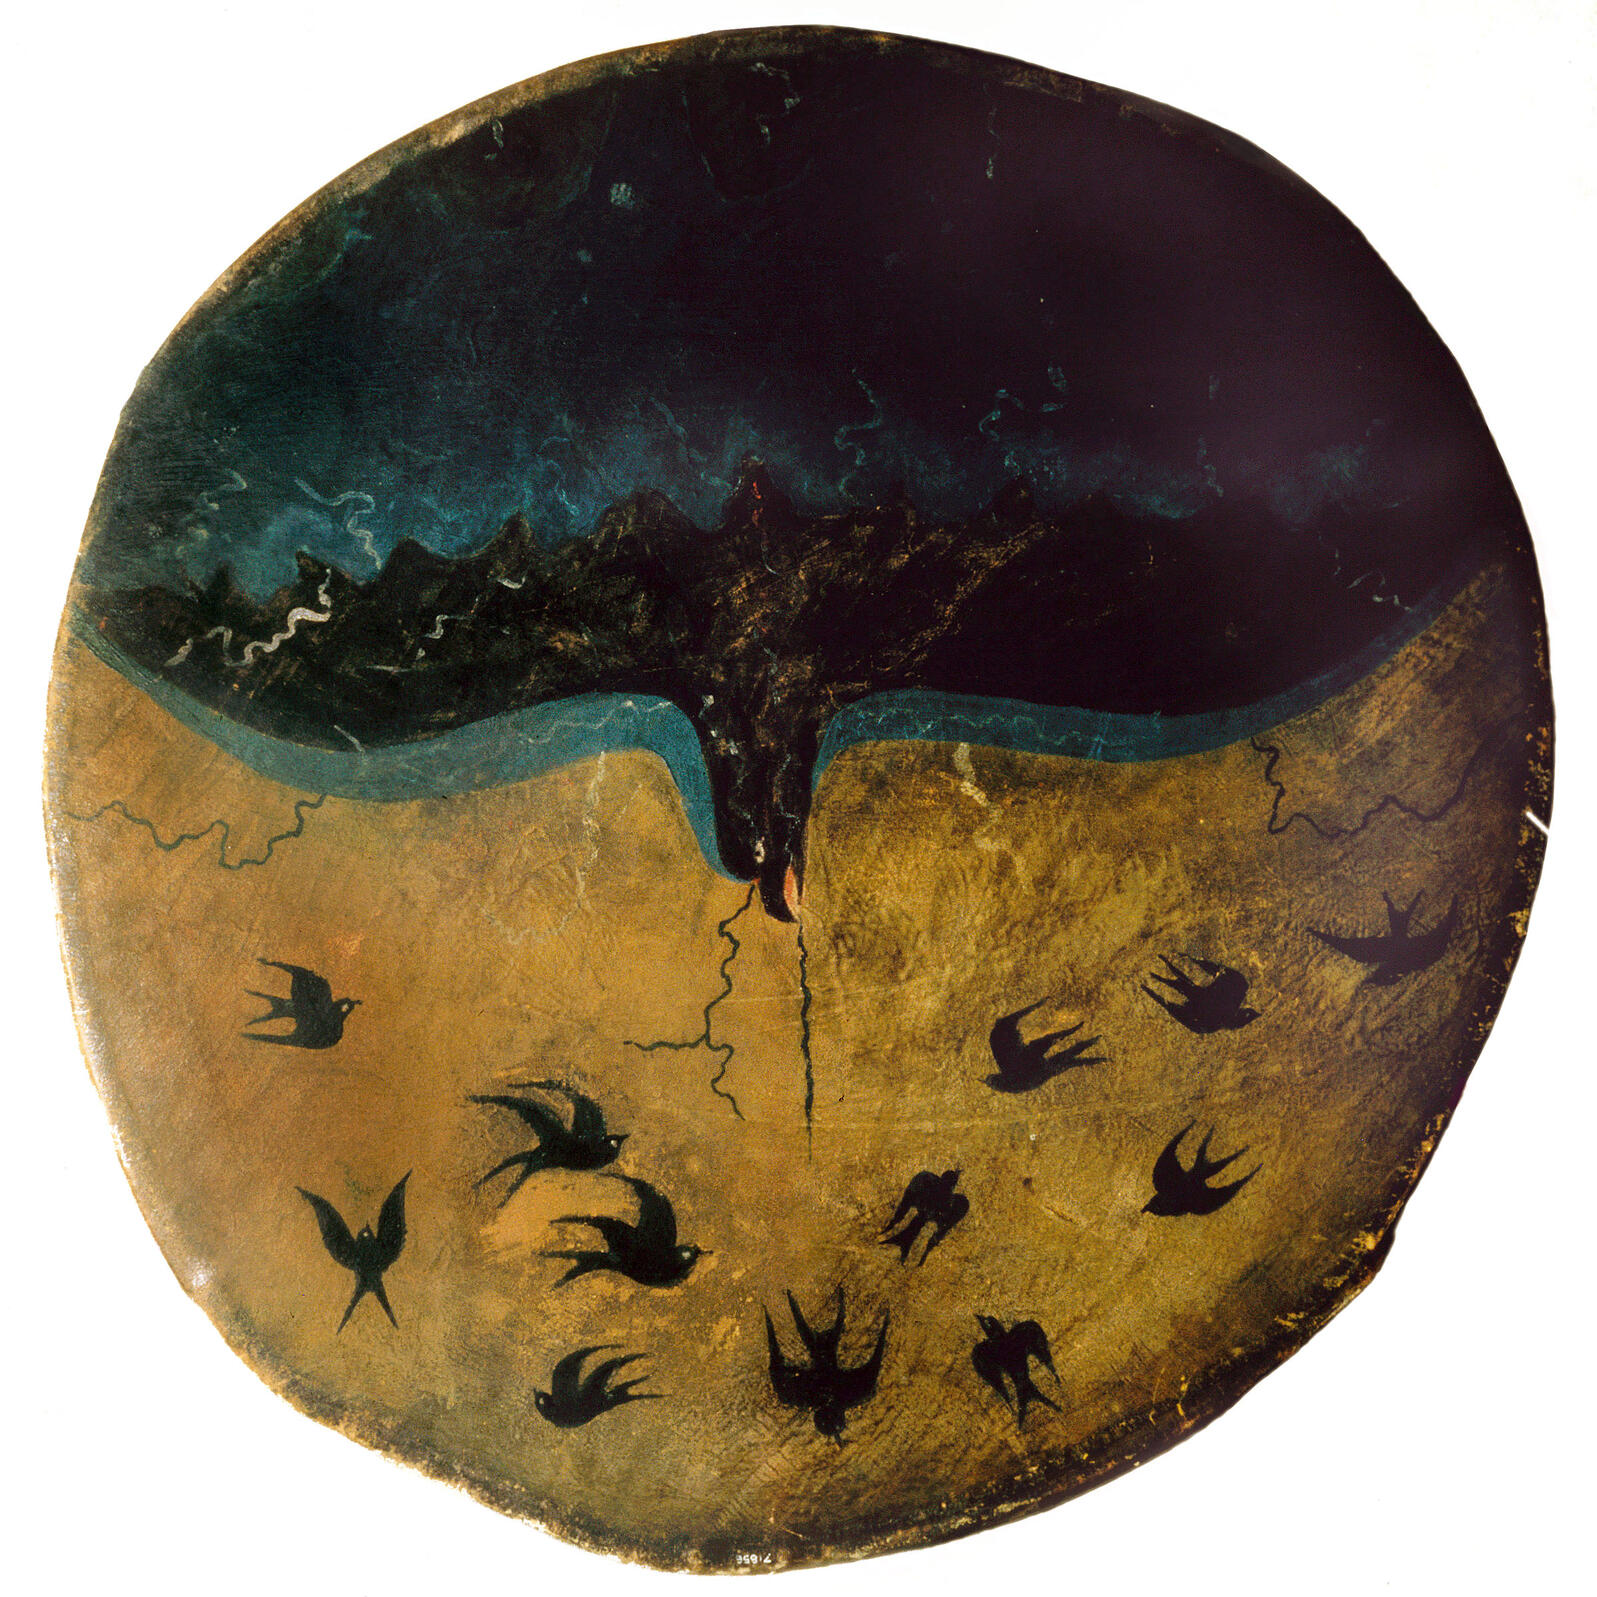 Depiction of Thunderbird painted on a drum by a Pawnee artist in the late 19th century. Heritage Image Partnership Ltd/Alamy